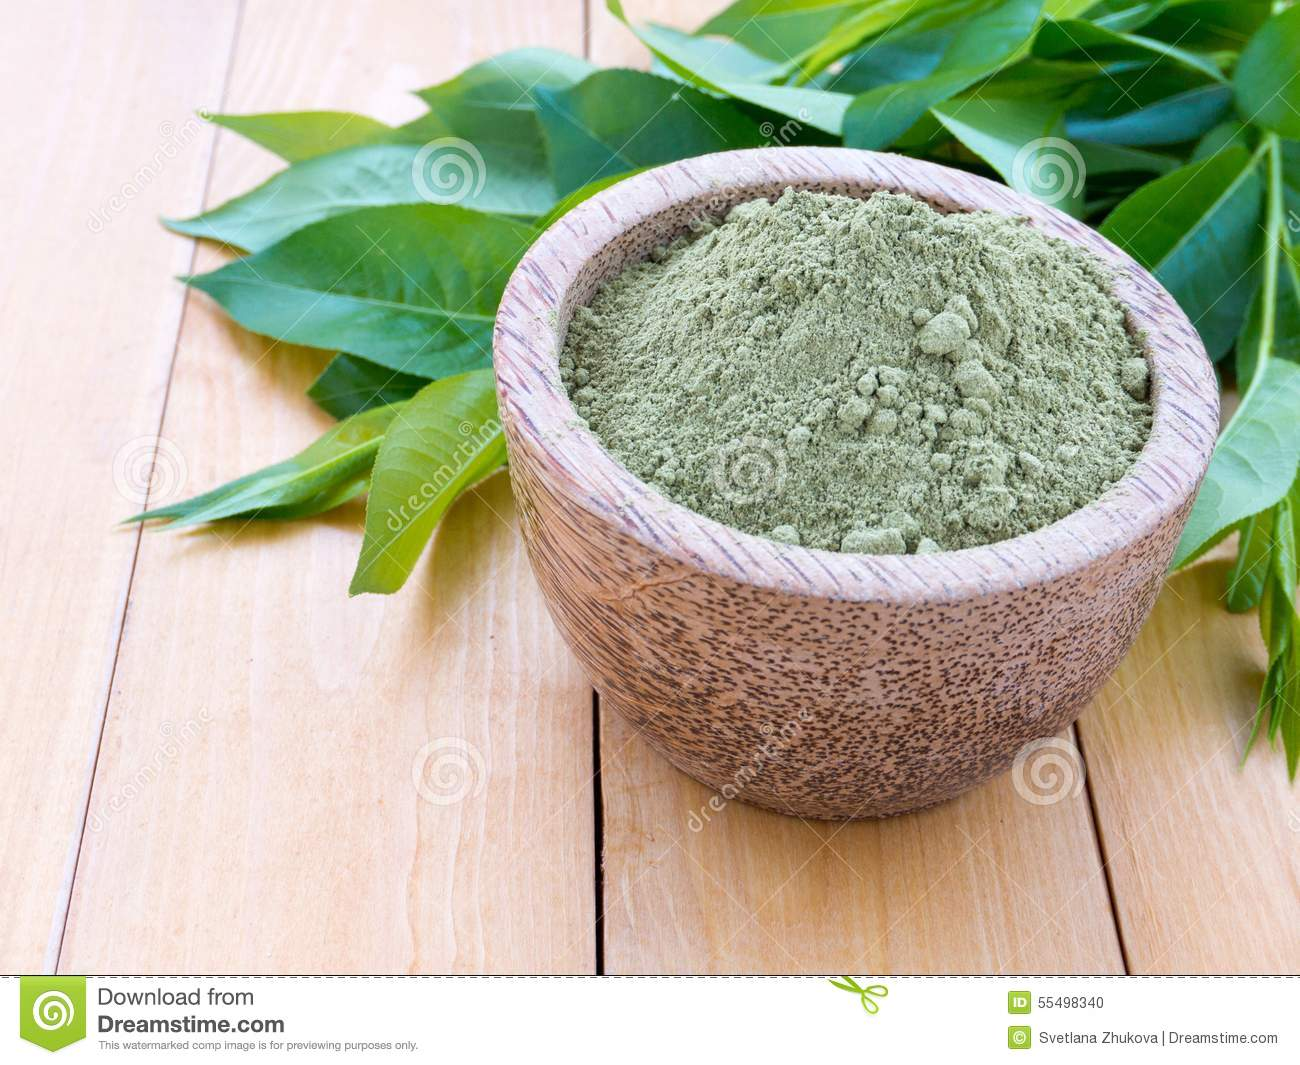 Henna Safe Hair Dye Powder Stock Photo Image Of Powder 55498340